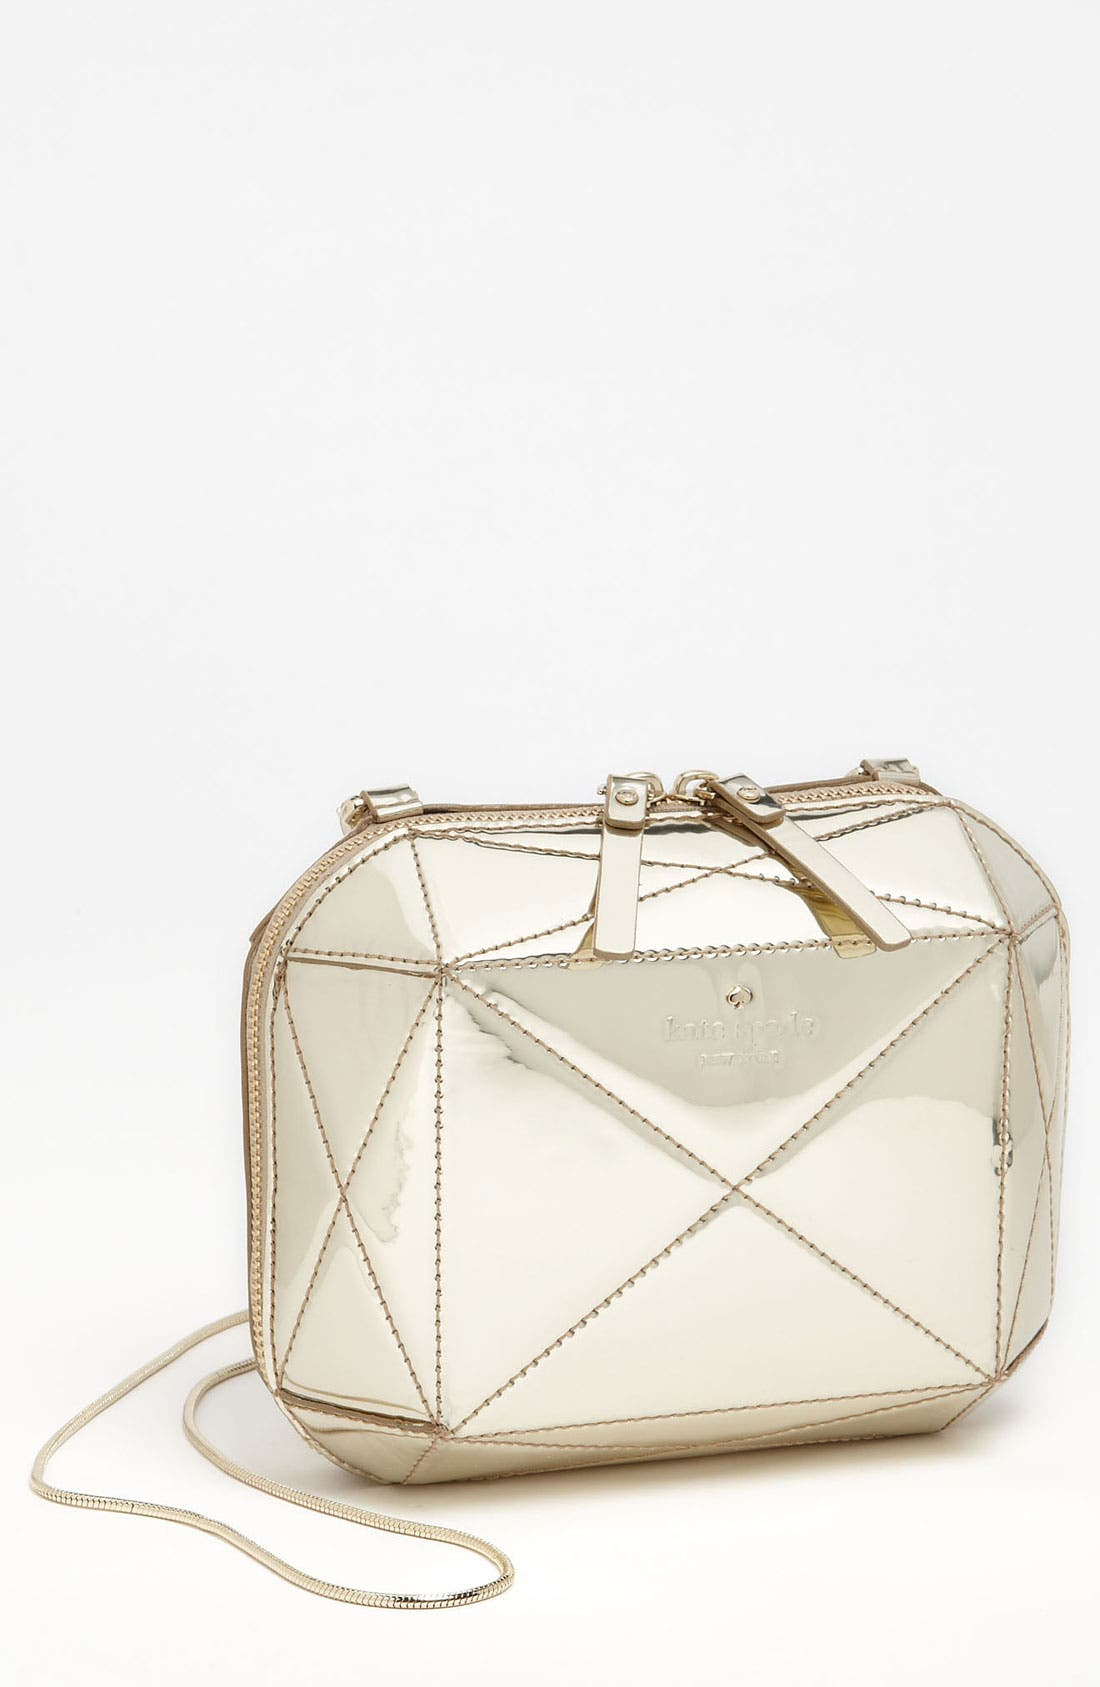 Main Image - kate spade new york 'icebox jewels' crossbody bag